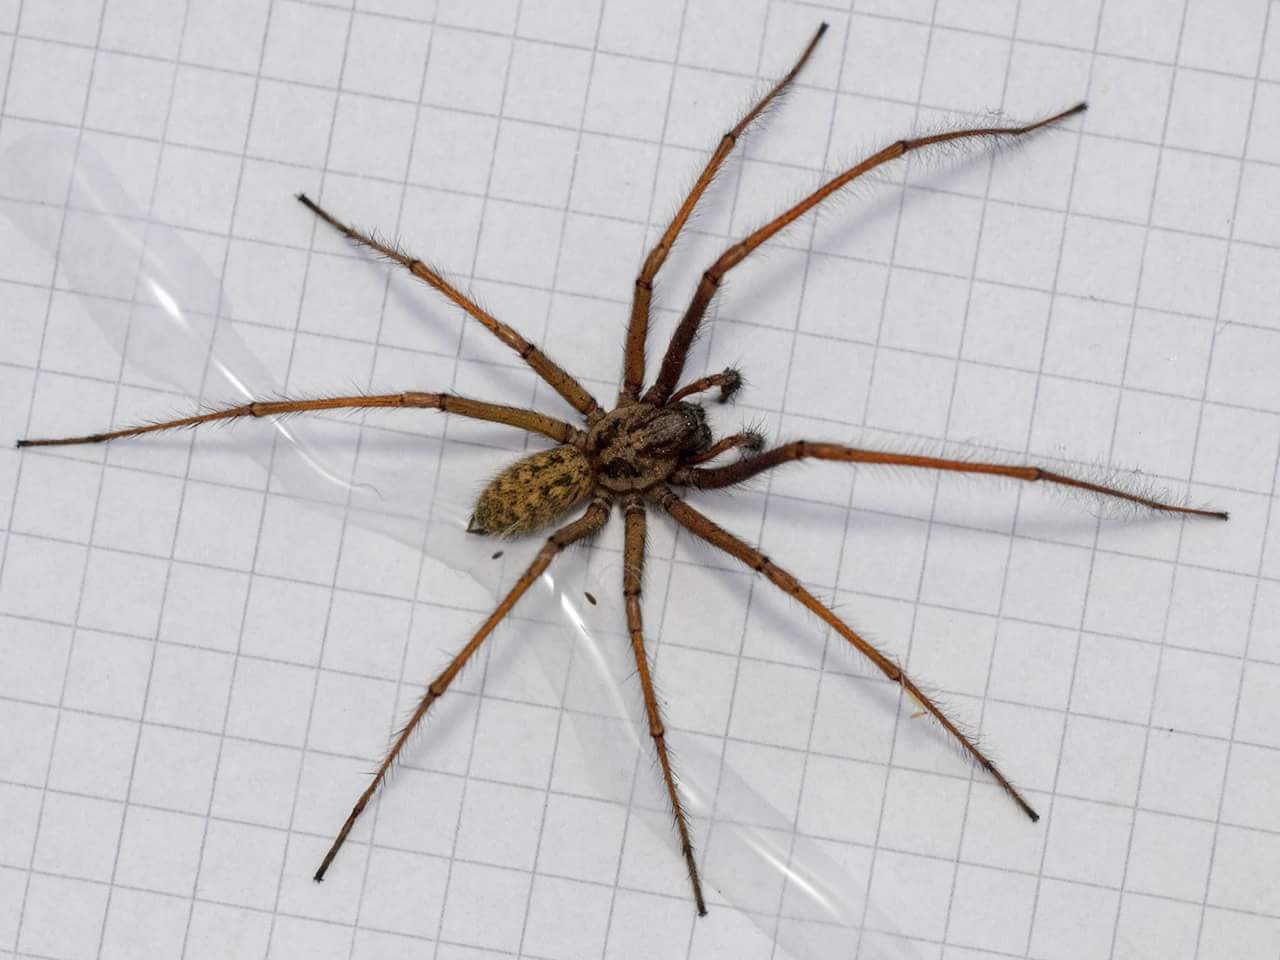 Eratigena atrica - the European House Spider